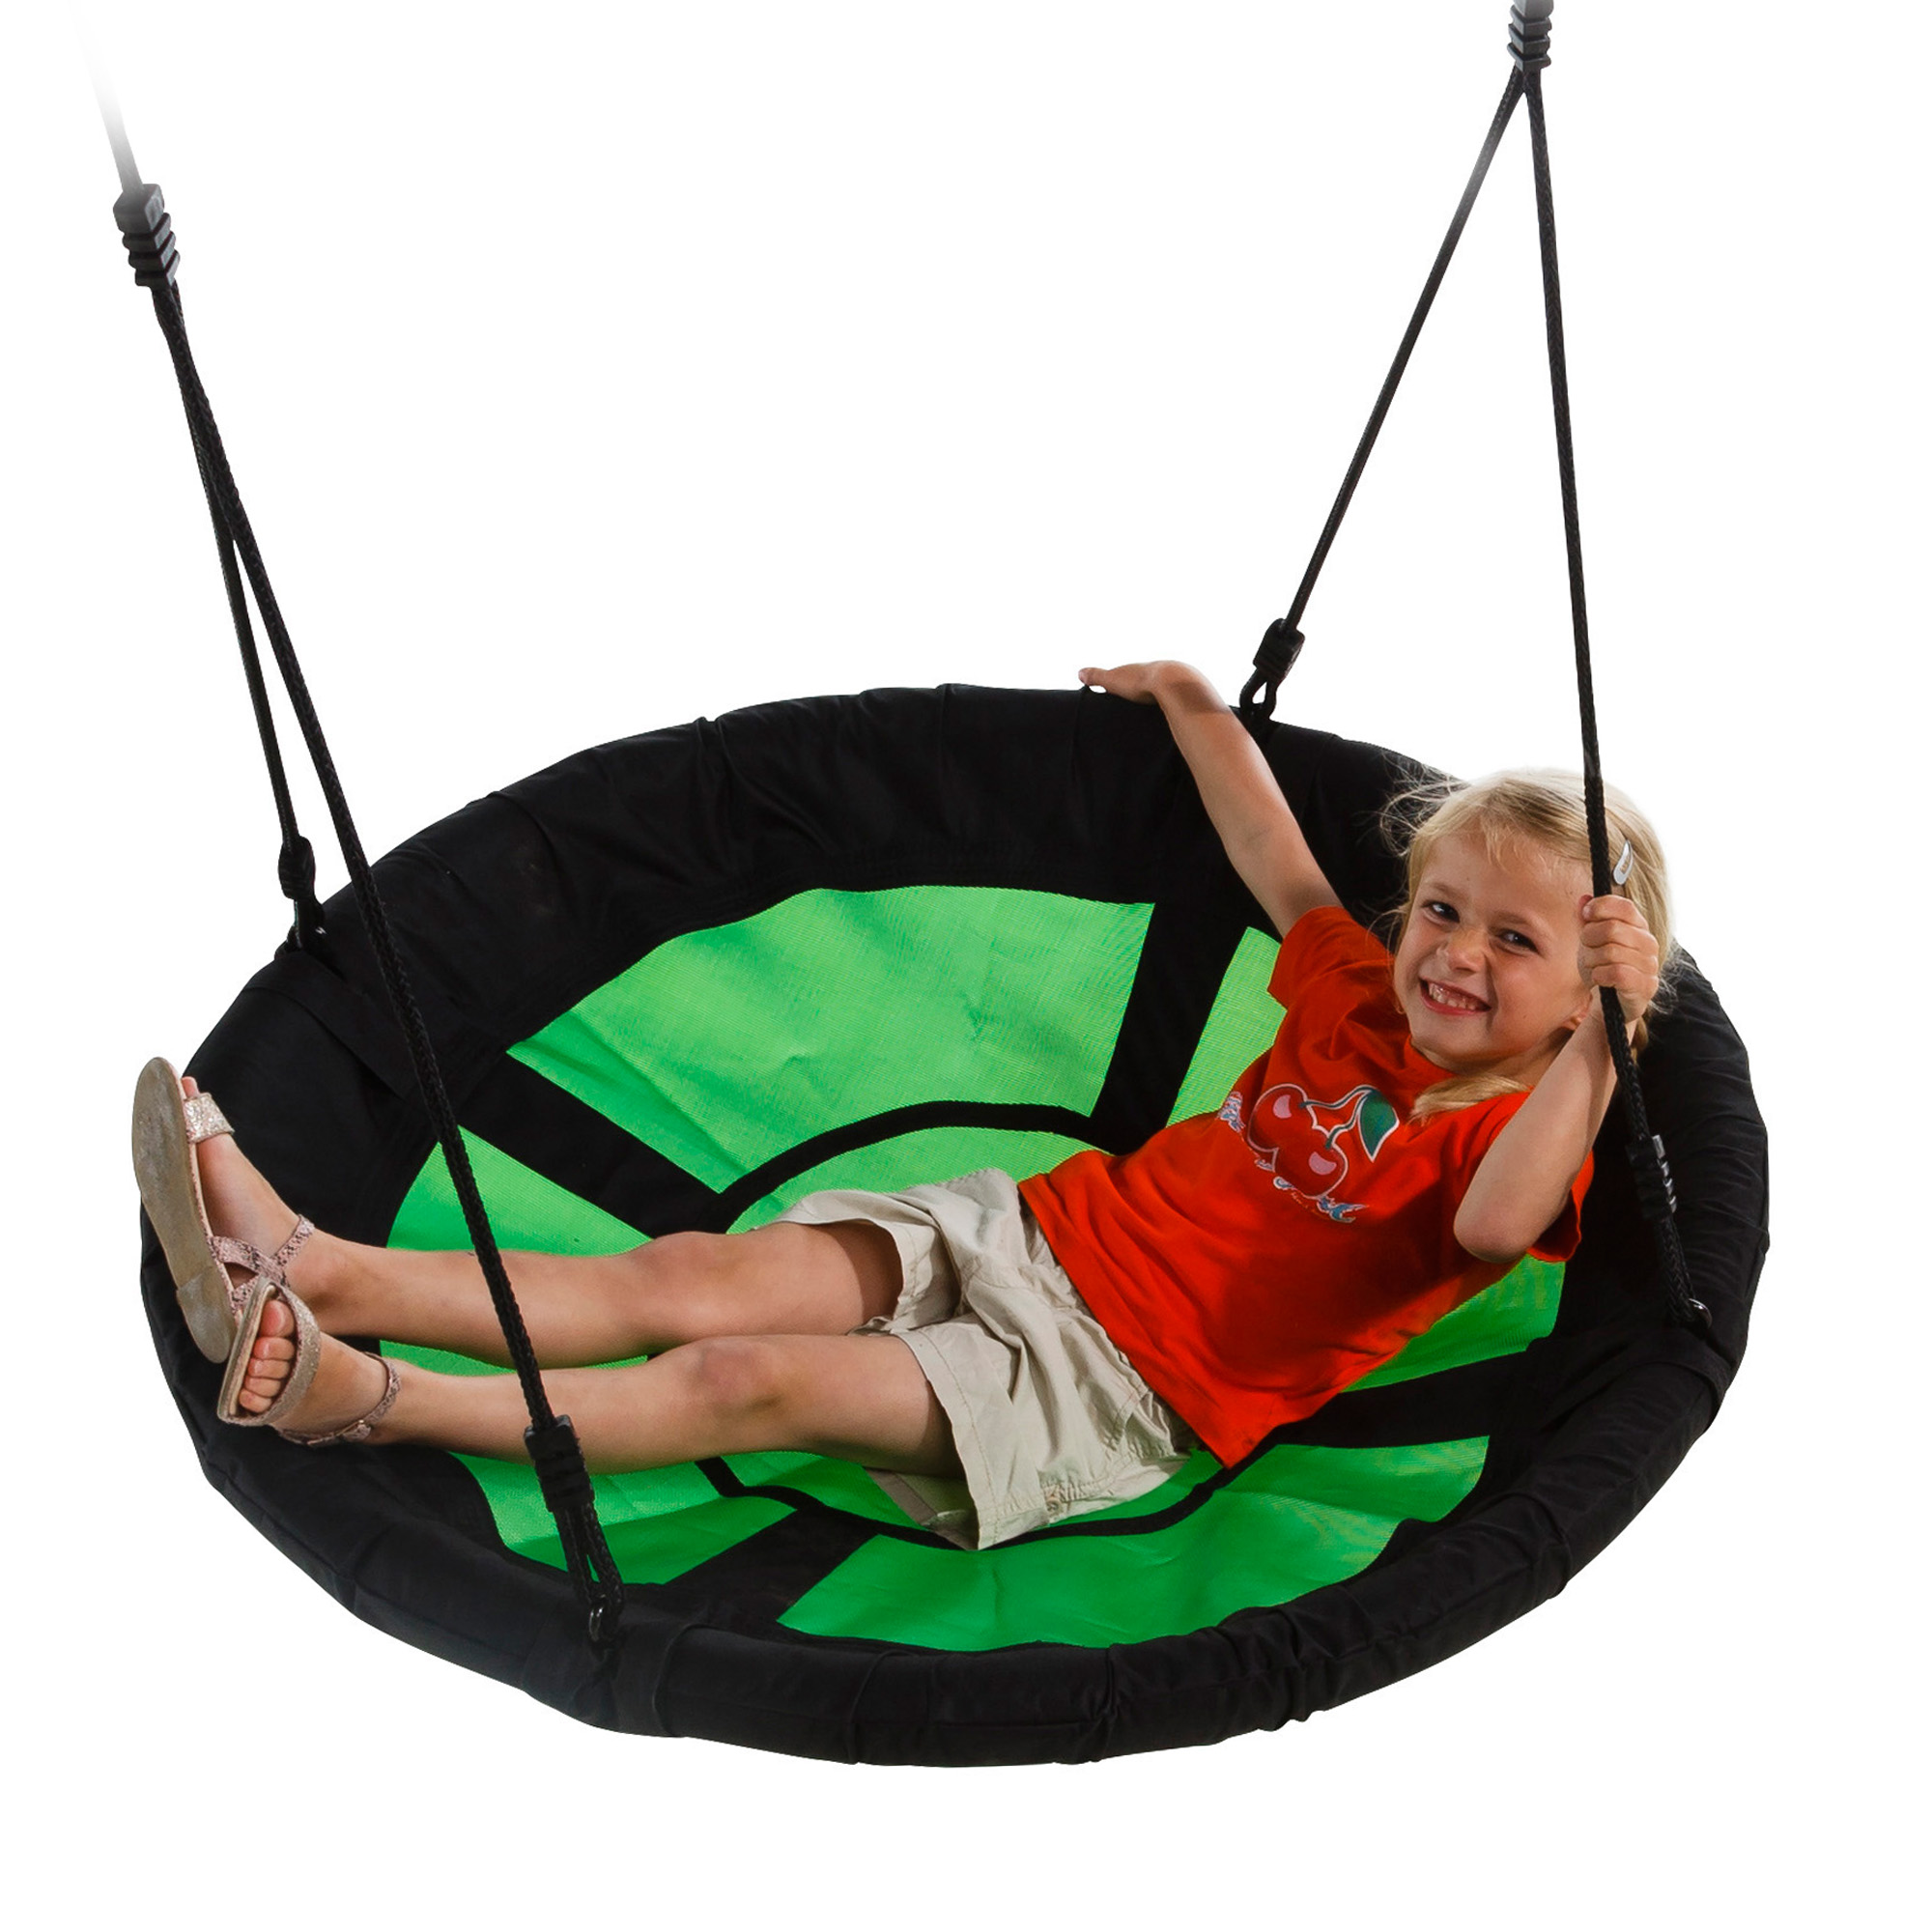 Swing-N-Slide 40 in Diameter Green Nest Swing